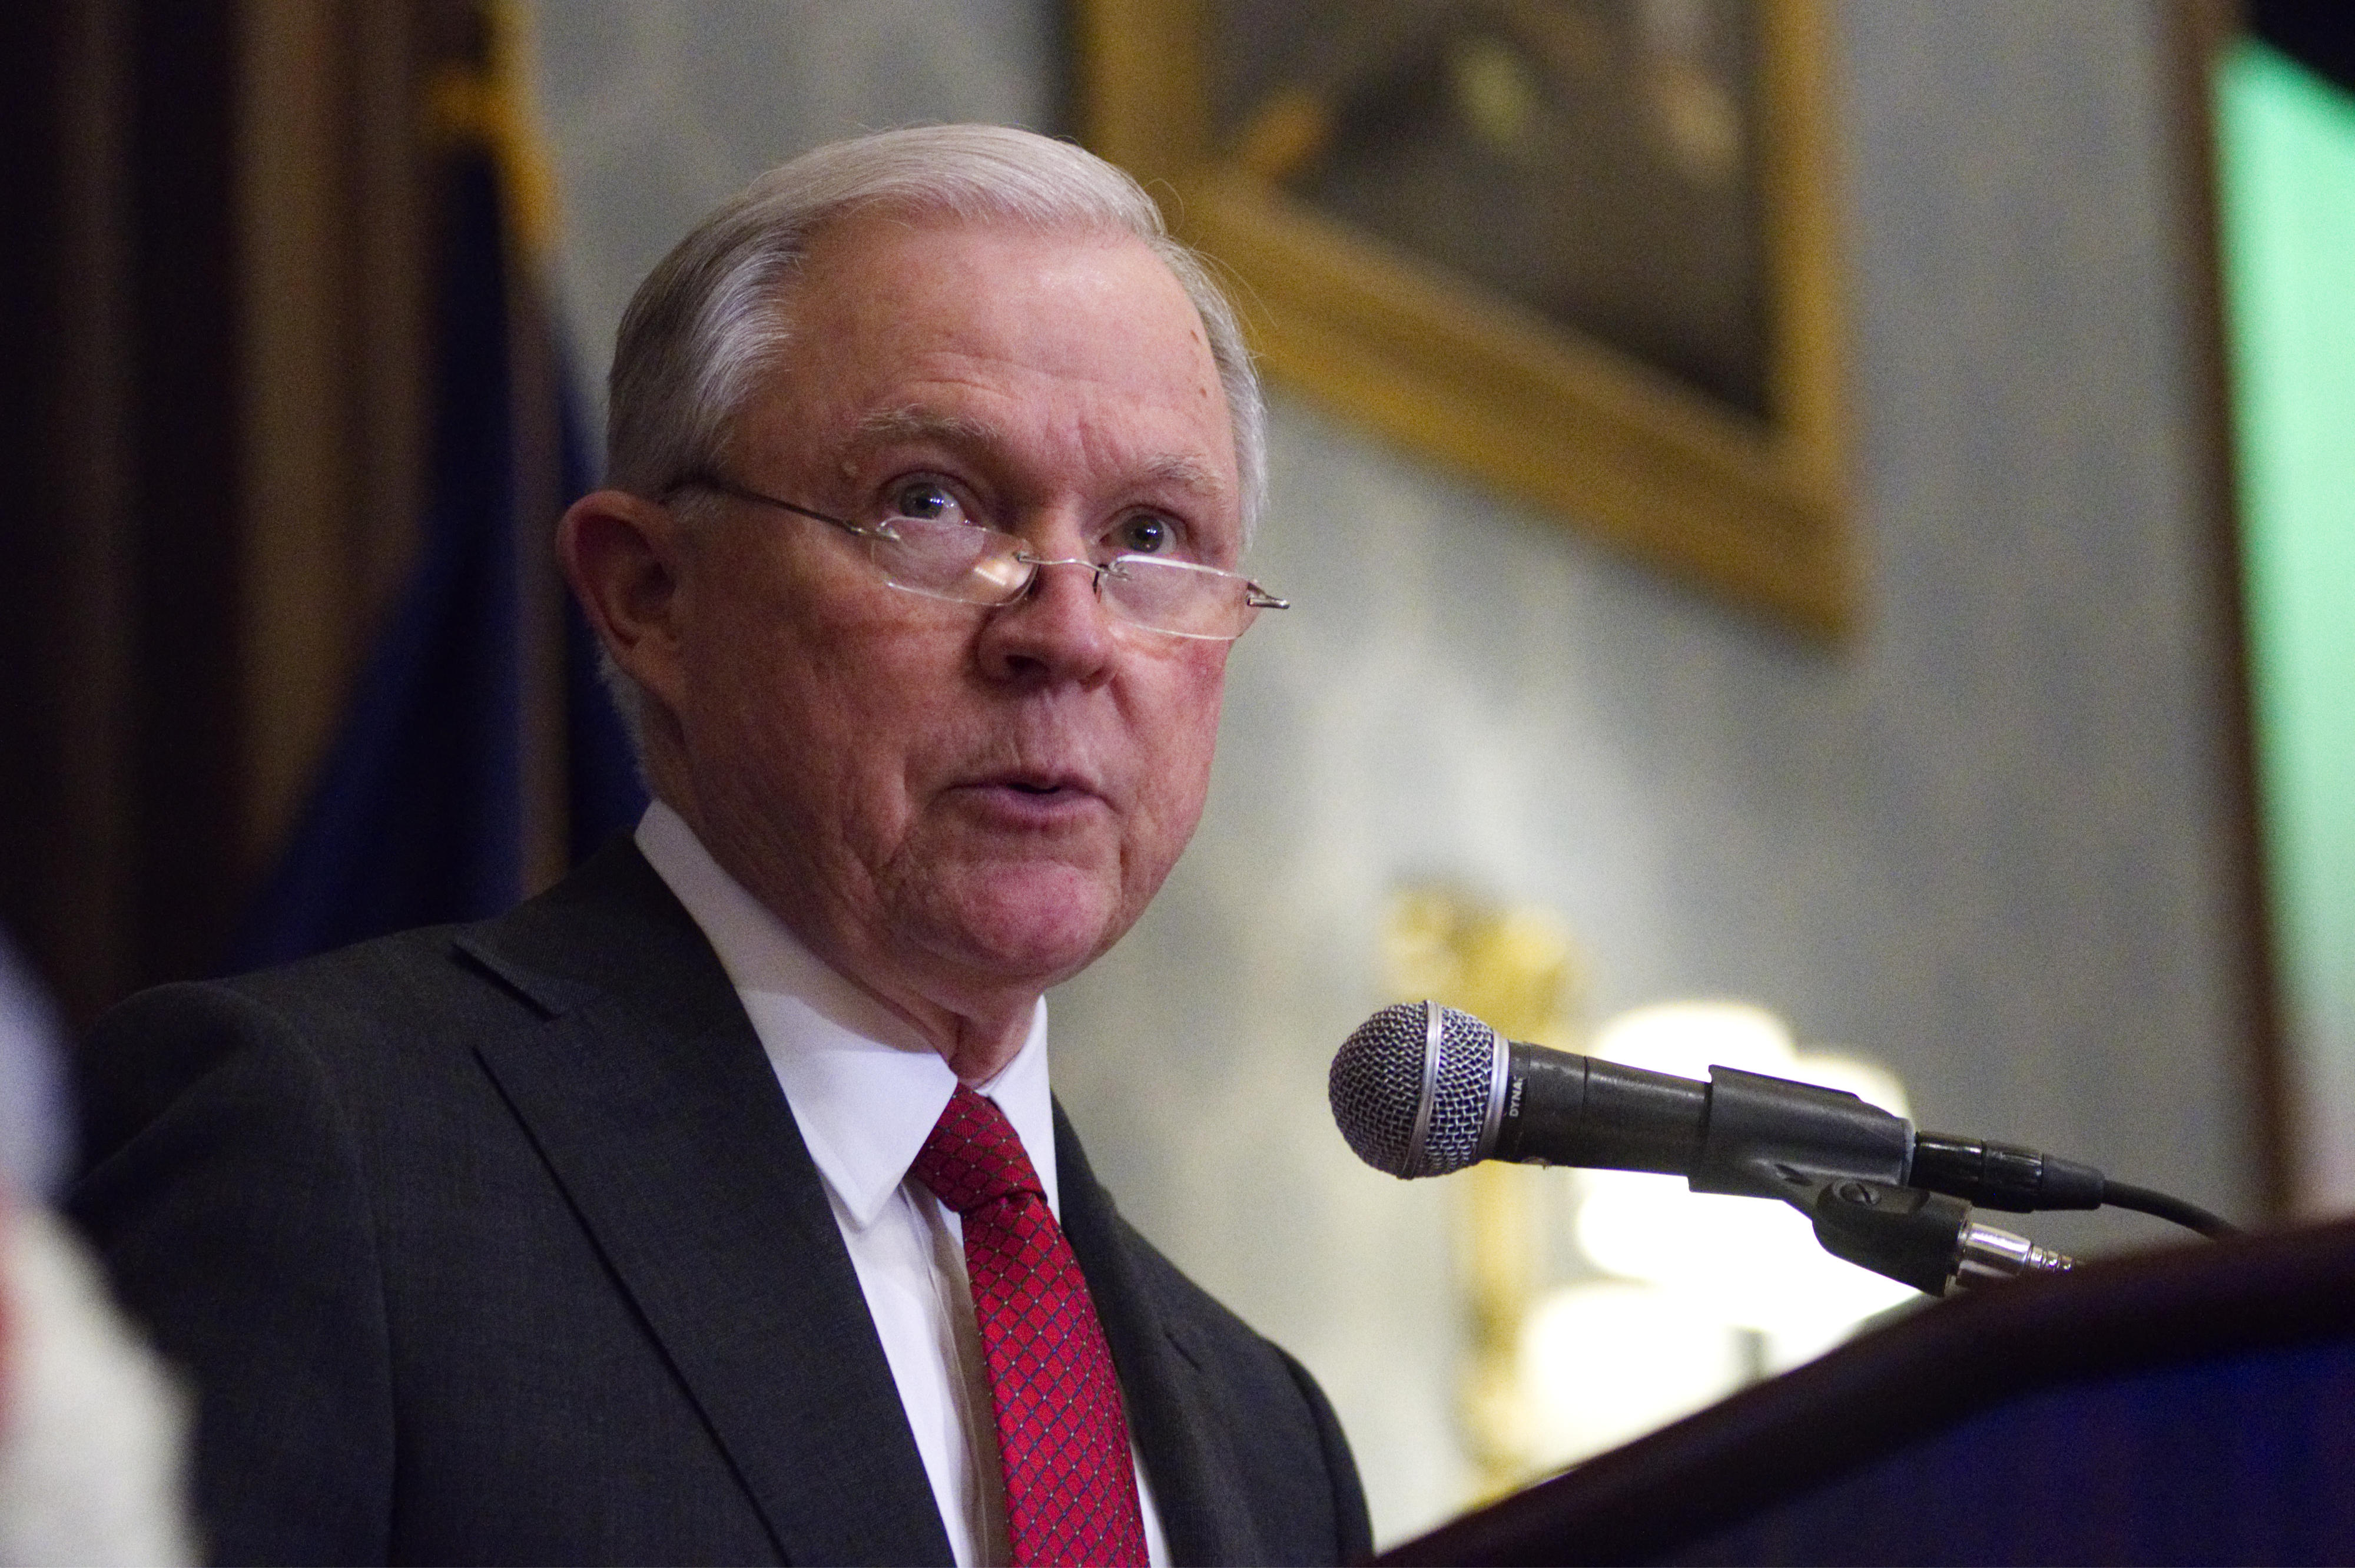 Attorney General Jeff Sessions stands at a podium. Sessions announced a cybersecurity task force composed of members from several government agencies and divisions of the Justice Department Tuesday. Their focus will be the abuse of technology.